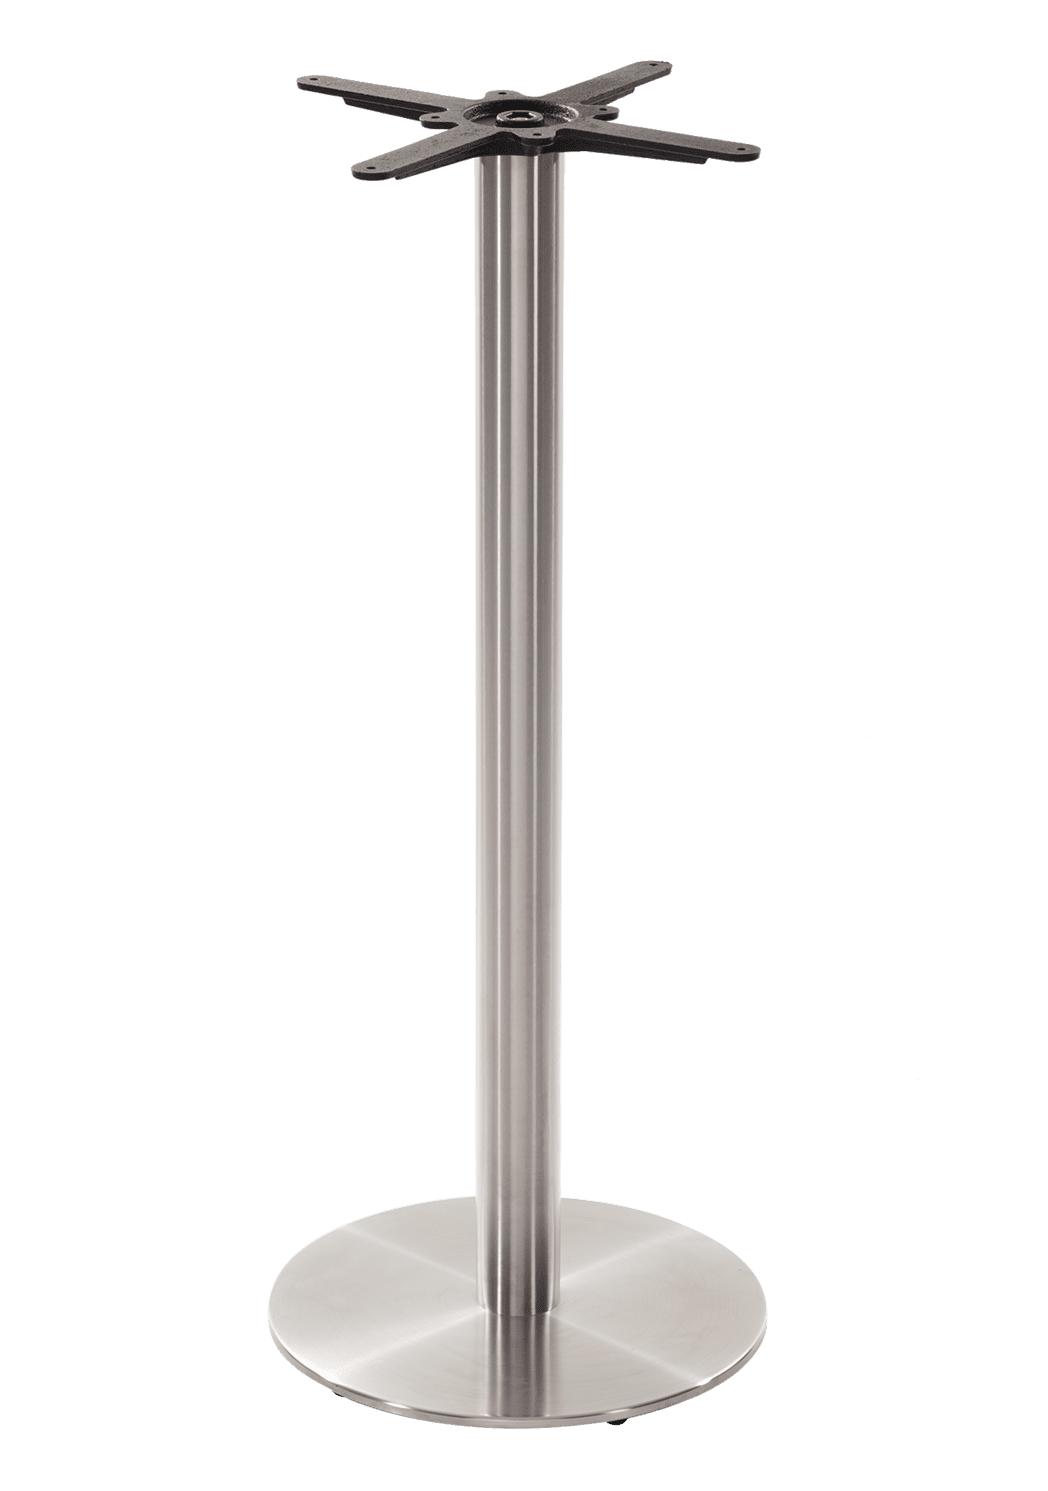 Round stainless steel table base - Medium - Poseur height - 1050 mm